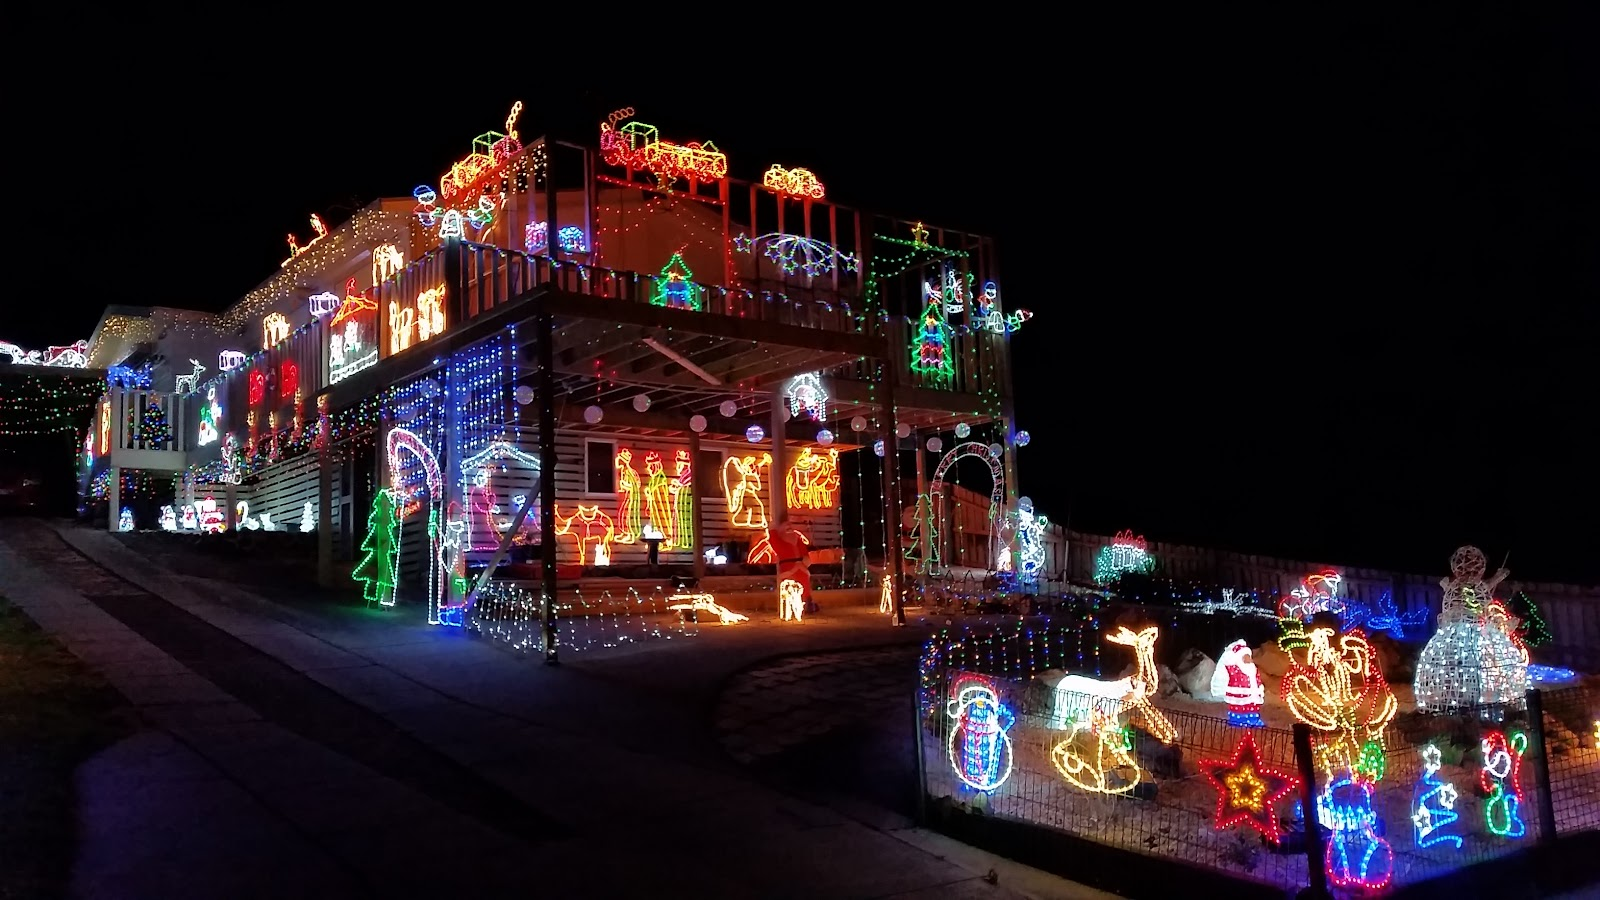 the finest display of lights and festive cheer on kelso road